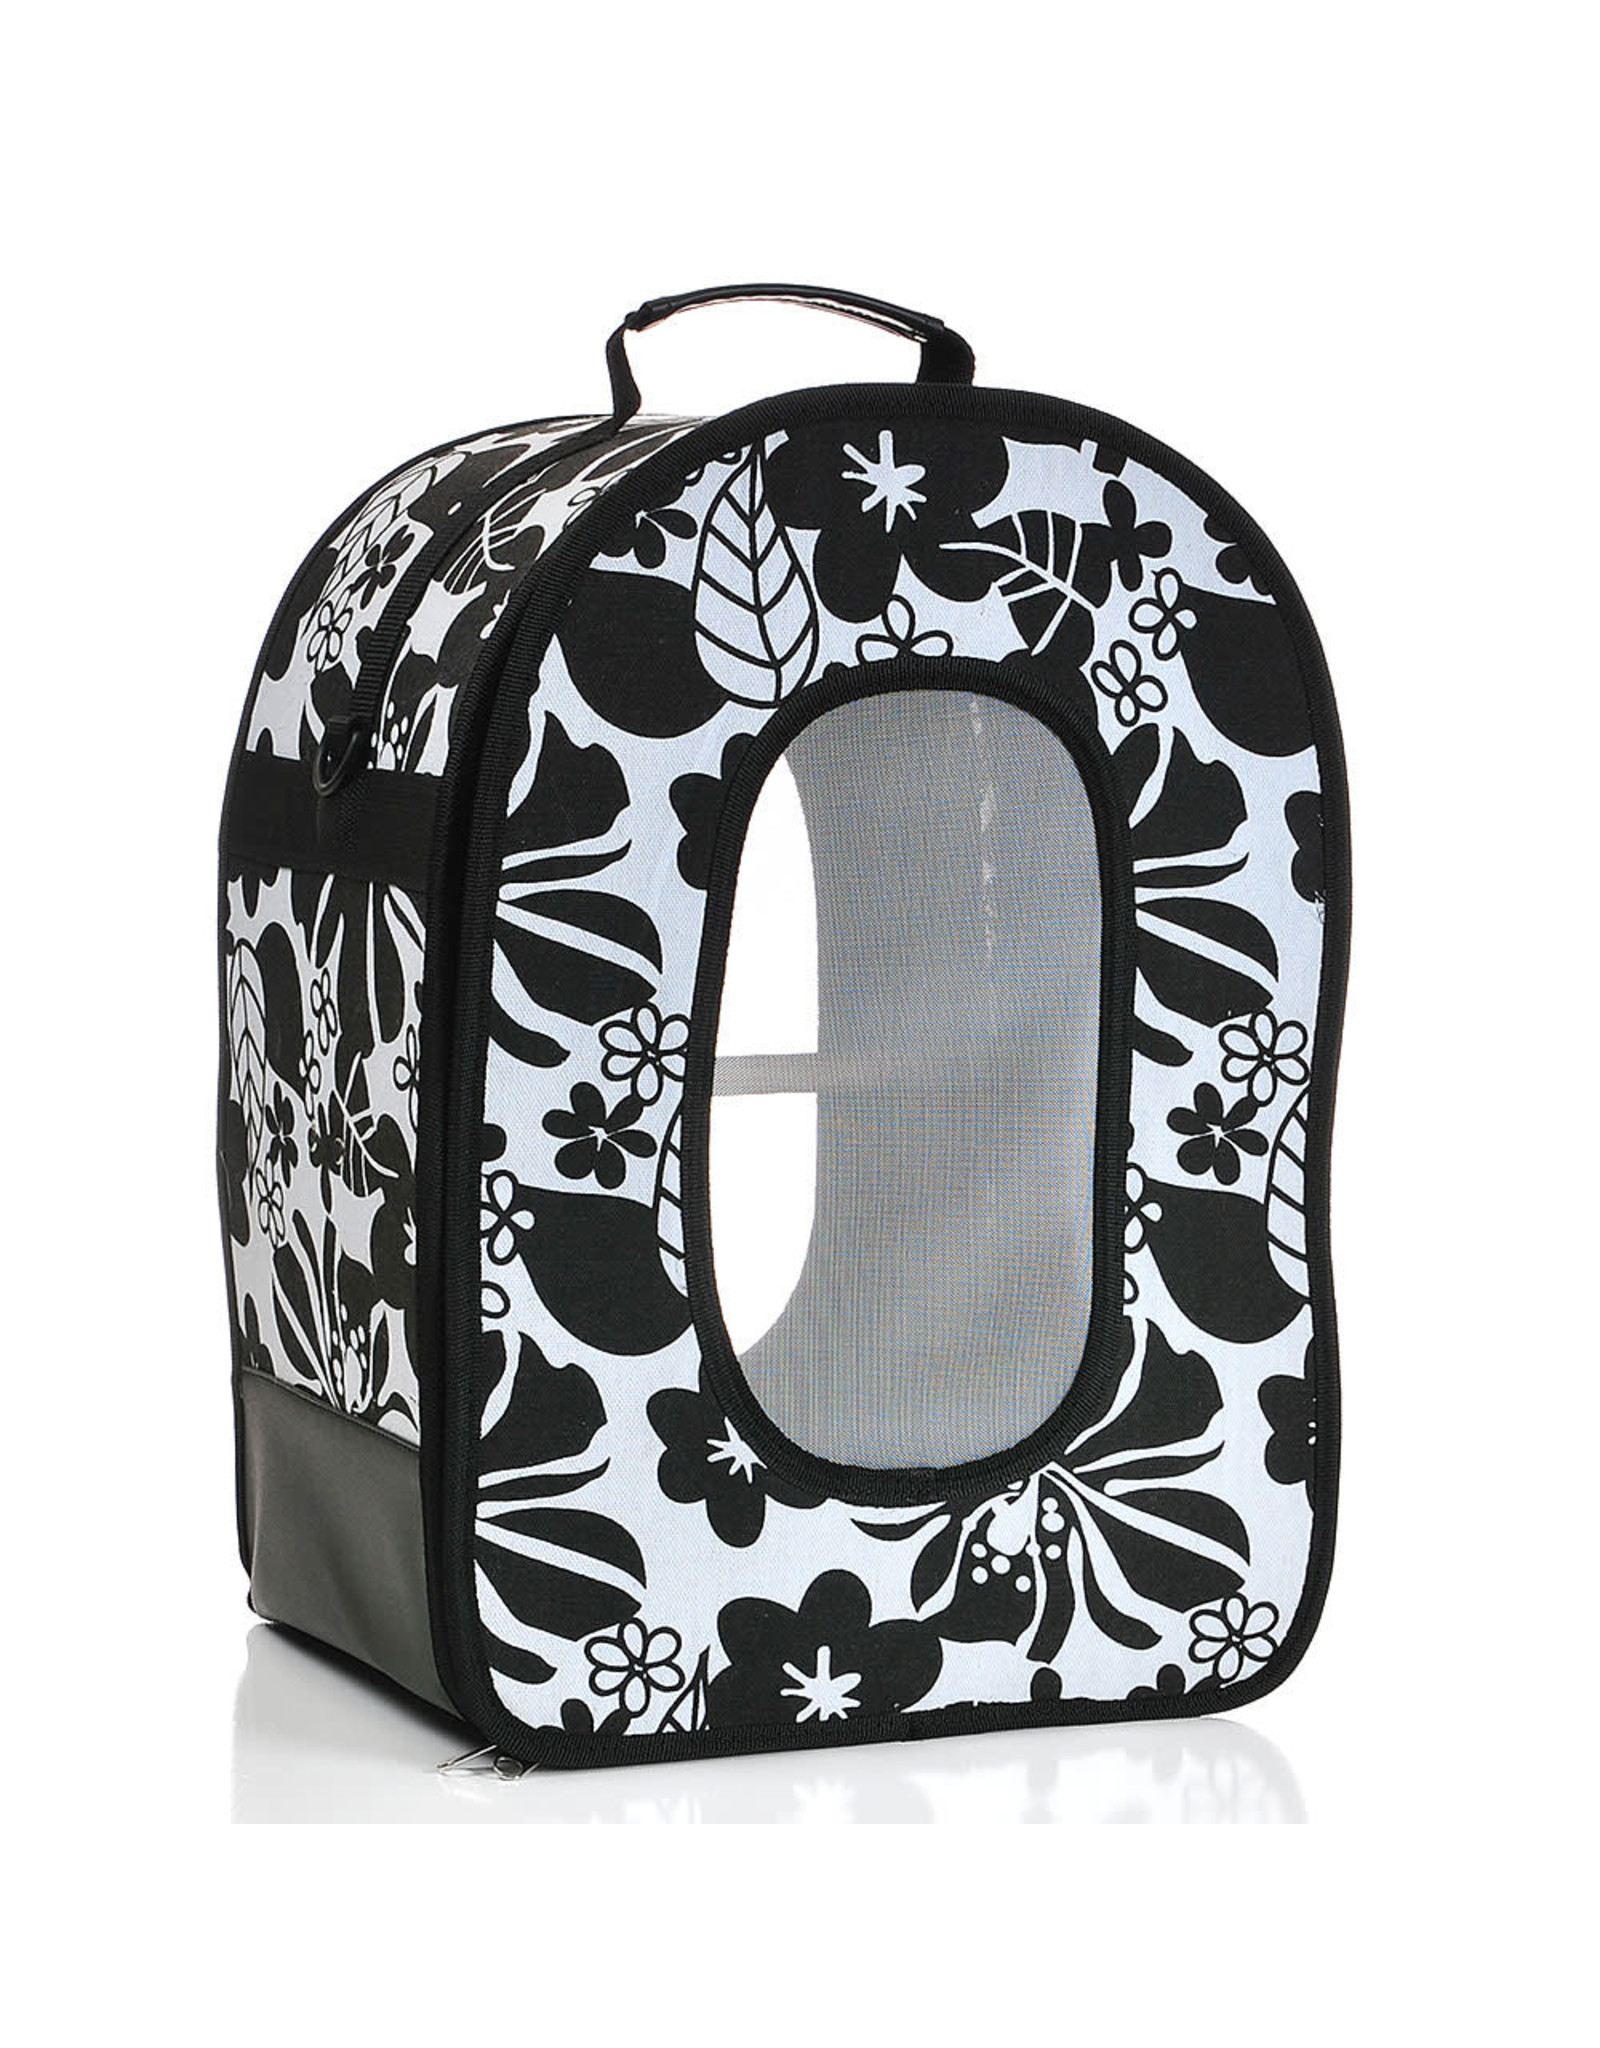 "Soft Sided Travel Carrier - SMALL BLACK 14.5"" x 10.5"" x 7"""